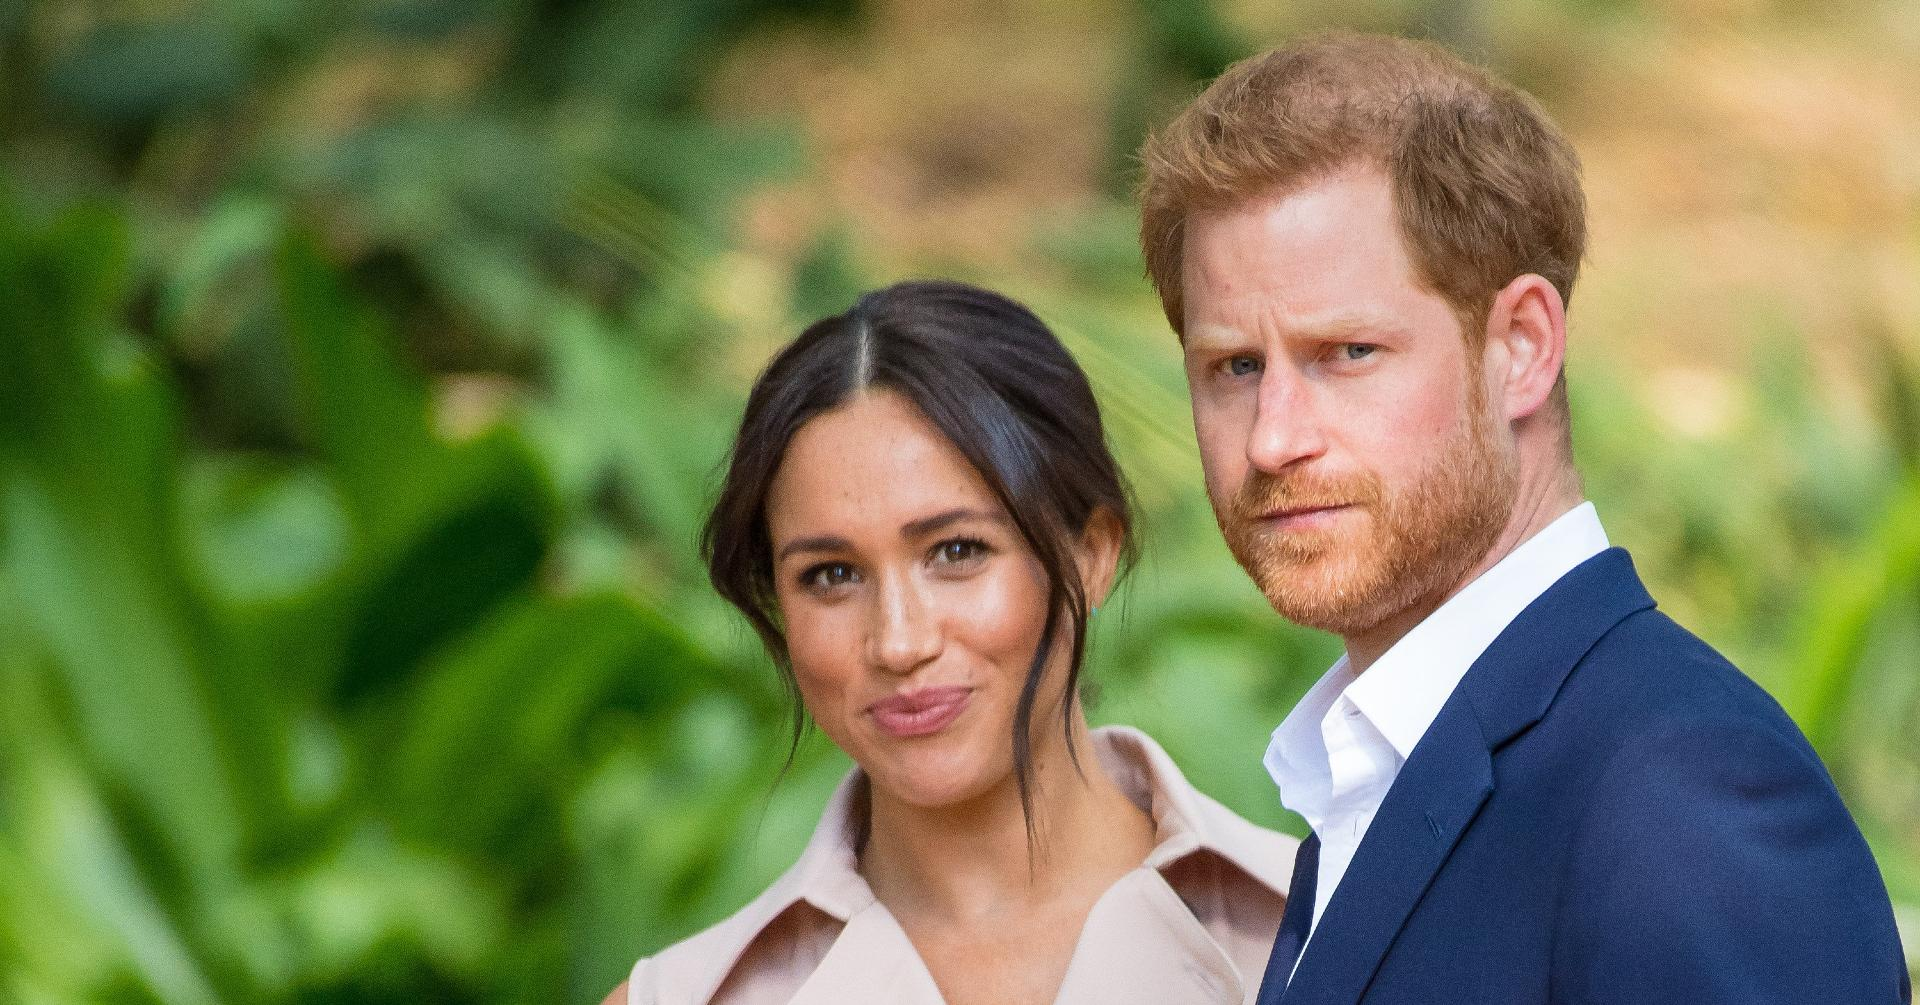 The Truth Will Come Out: Thomas Markle Is Making A Documentary About 'What Went Wrong' Between Him & Estranged Daughter Meghan